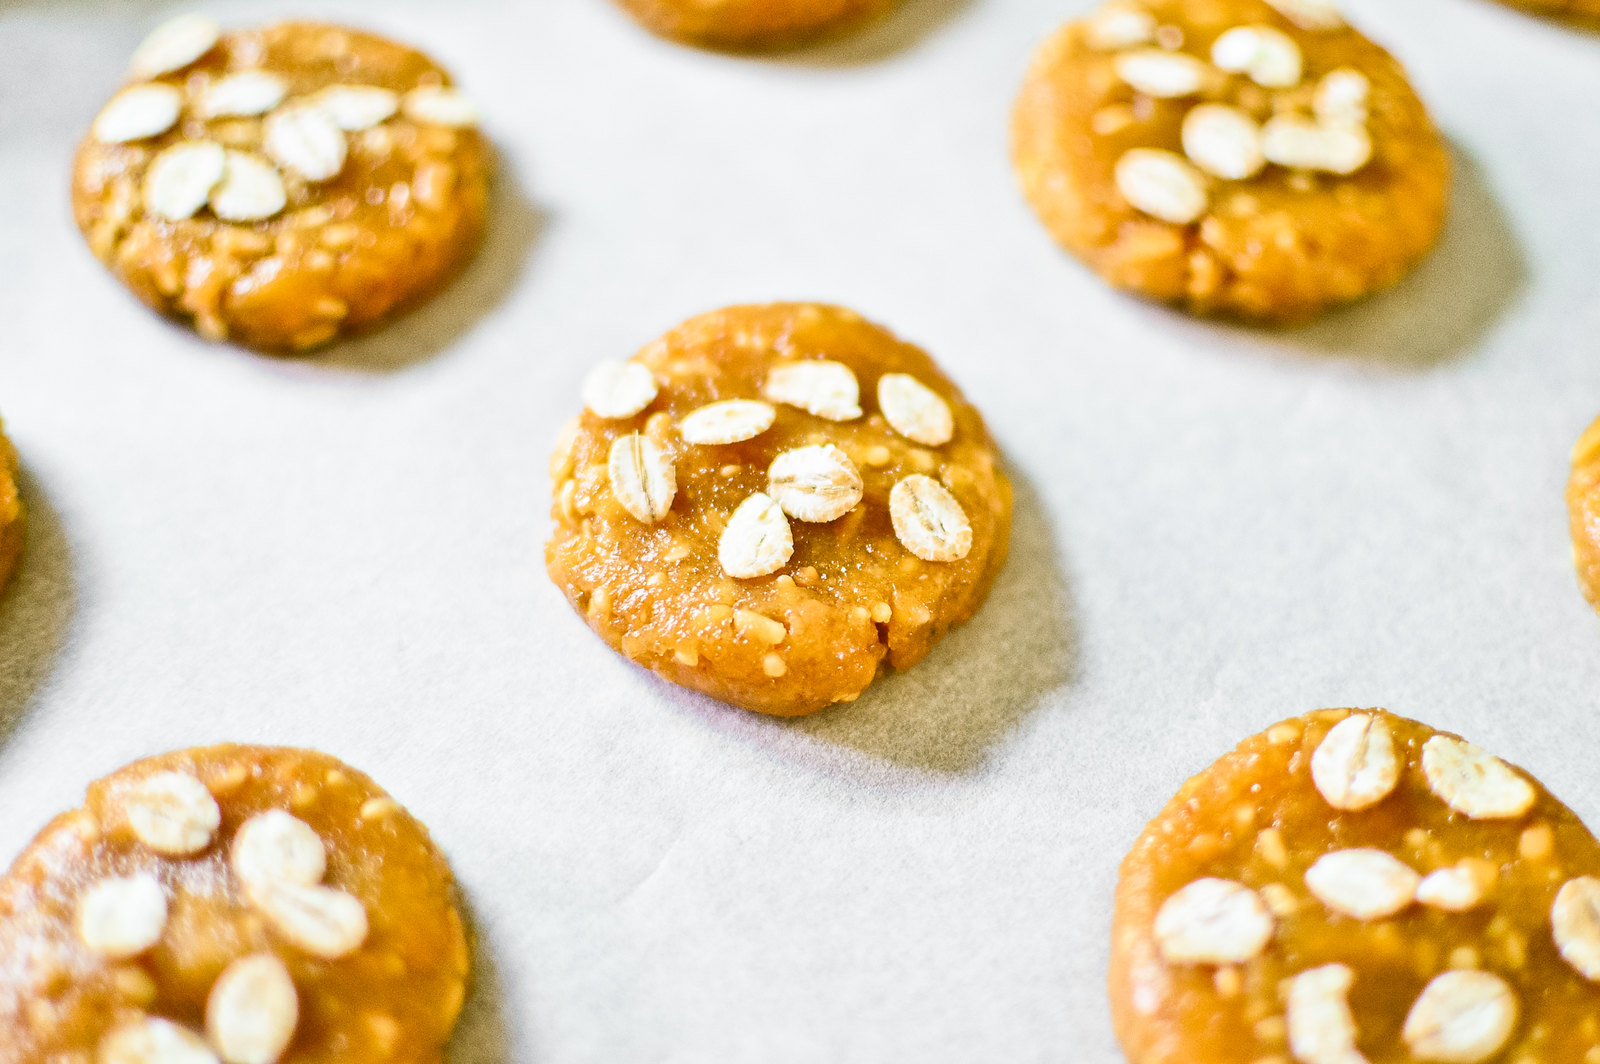 Flourless Peanut Butter Flaxseed Cookies